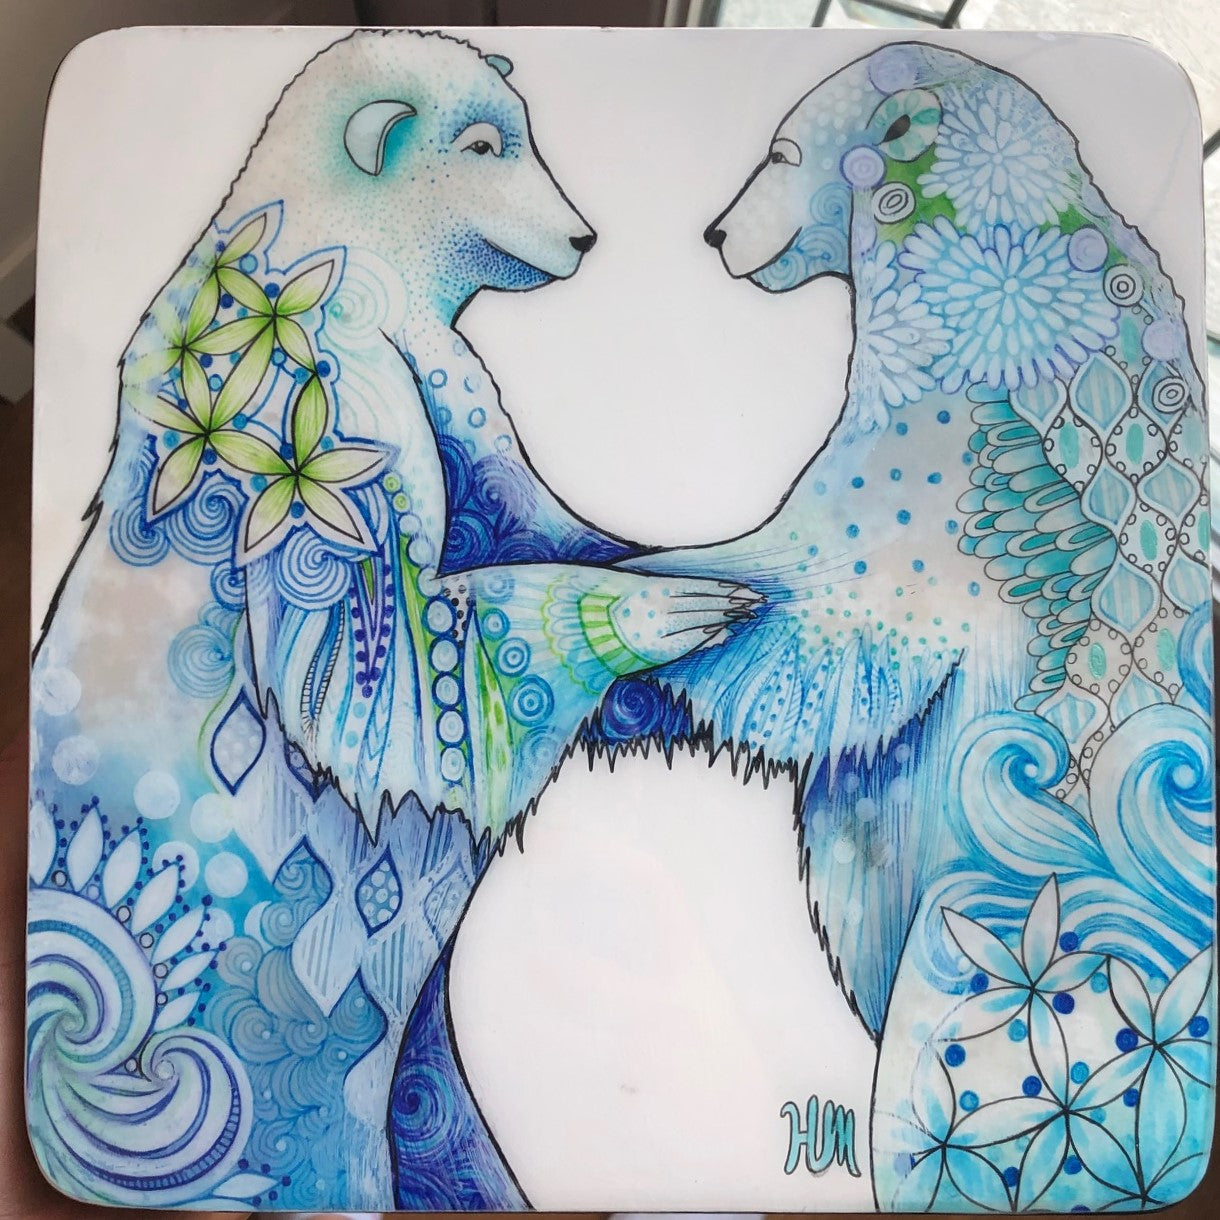 Original Art Work of Two Blue Bears by Canadian Artist Hanna Mark